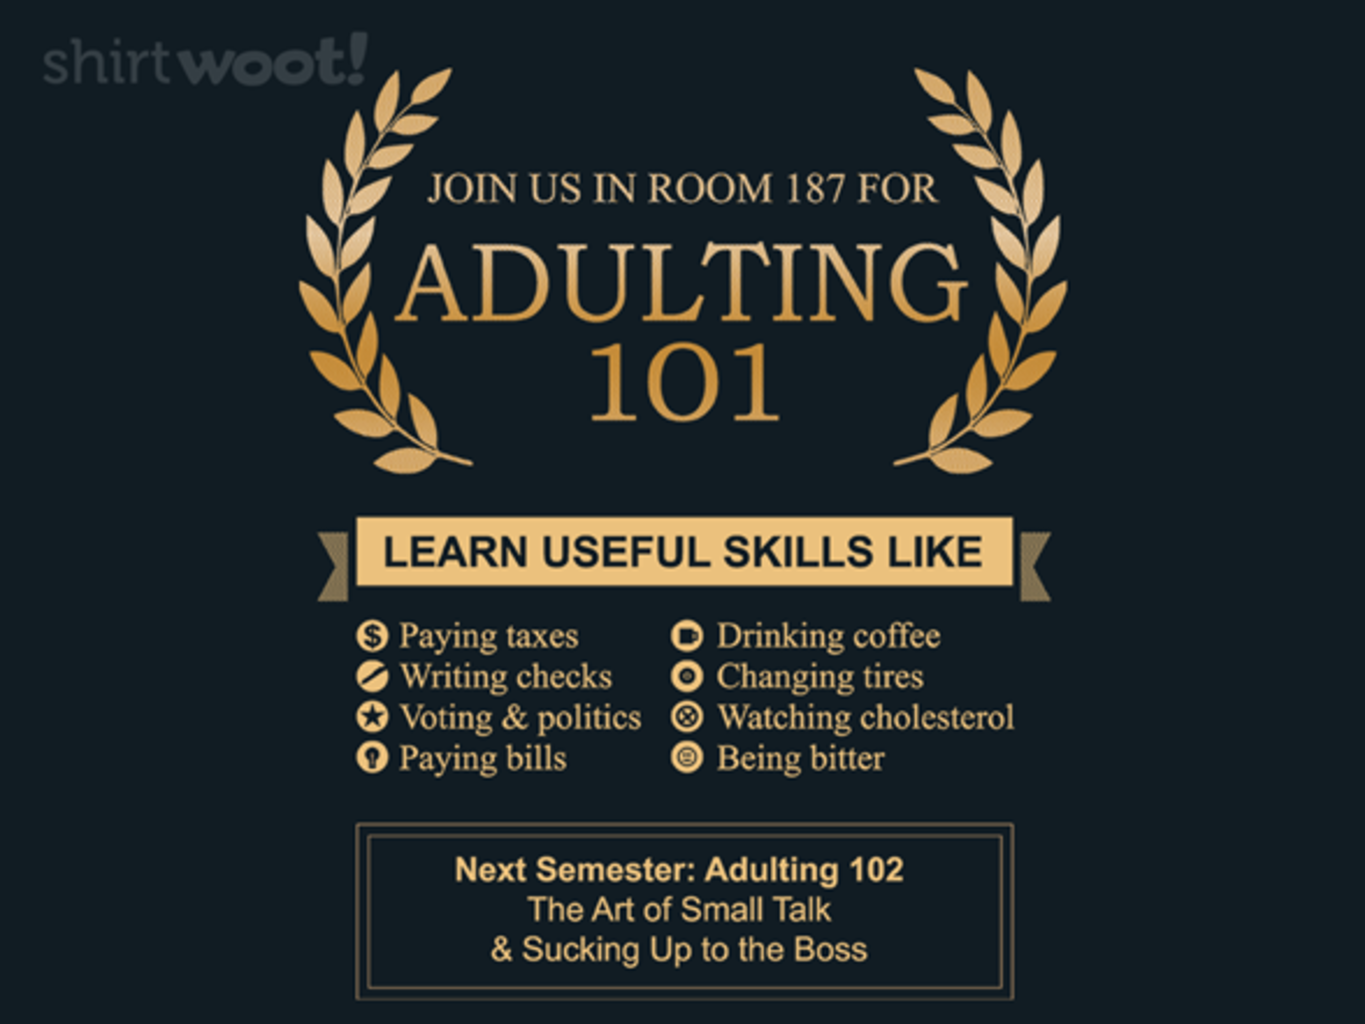 Woot!: Adulting 101